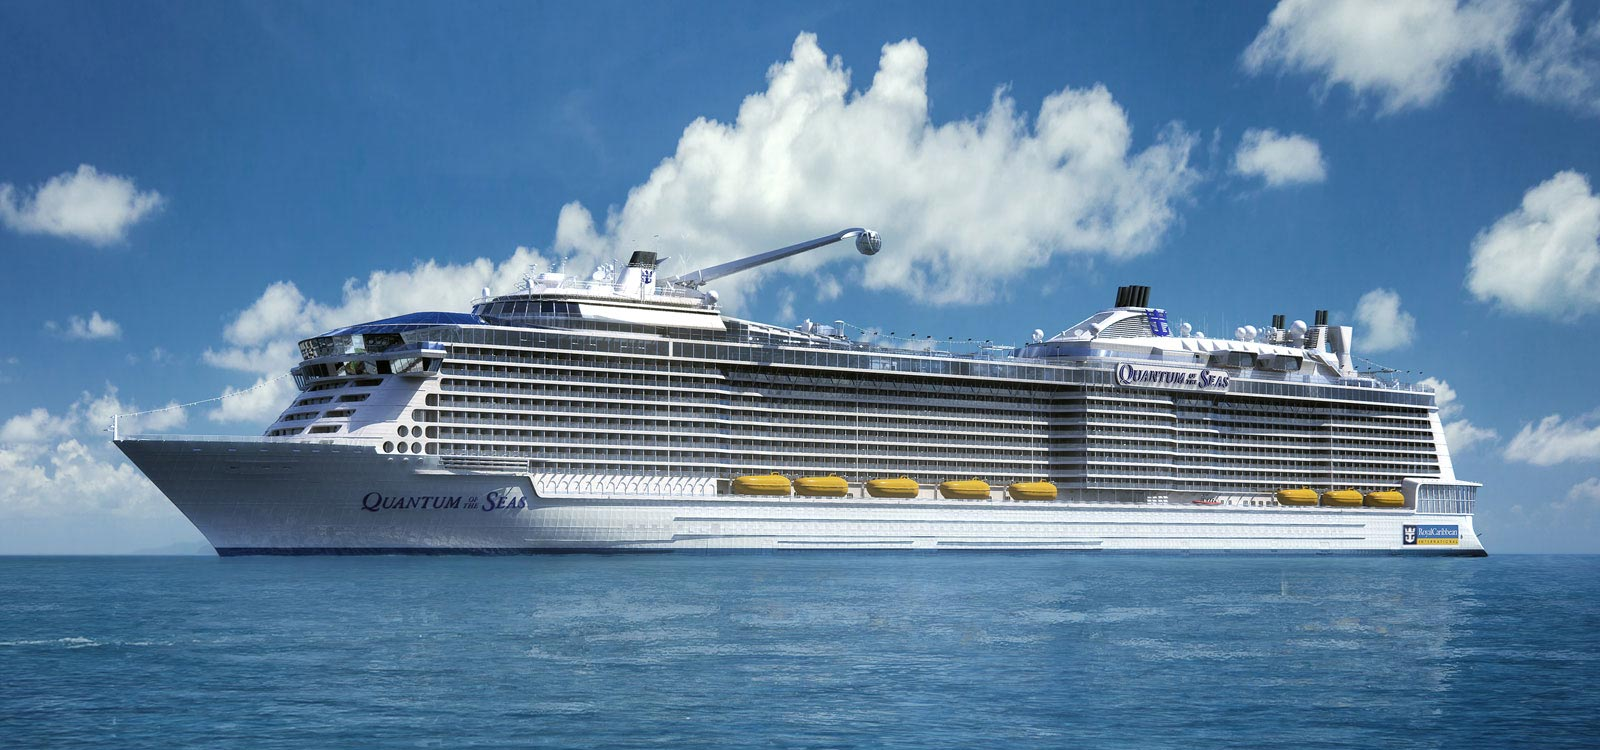 CRUCEROS QUANTUM OF THE SEAS ROYAL CARIBBEAN CRUCEROS CARIBE OFERTA DESDE NUEVA YORK NEW YORK CARIBBEAN CRUISES ROYAL CARIBBEAN